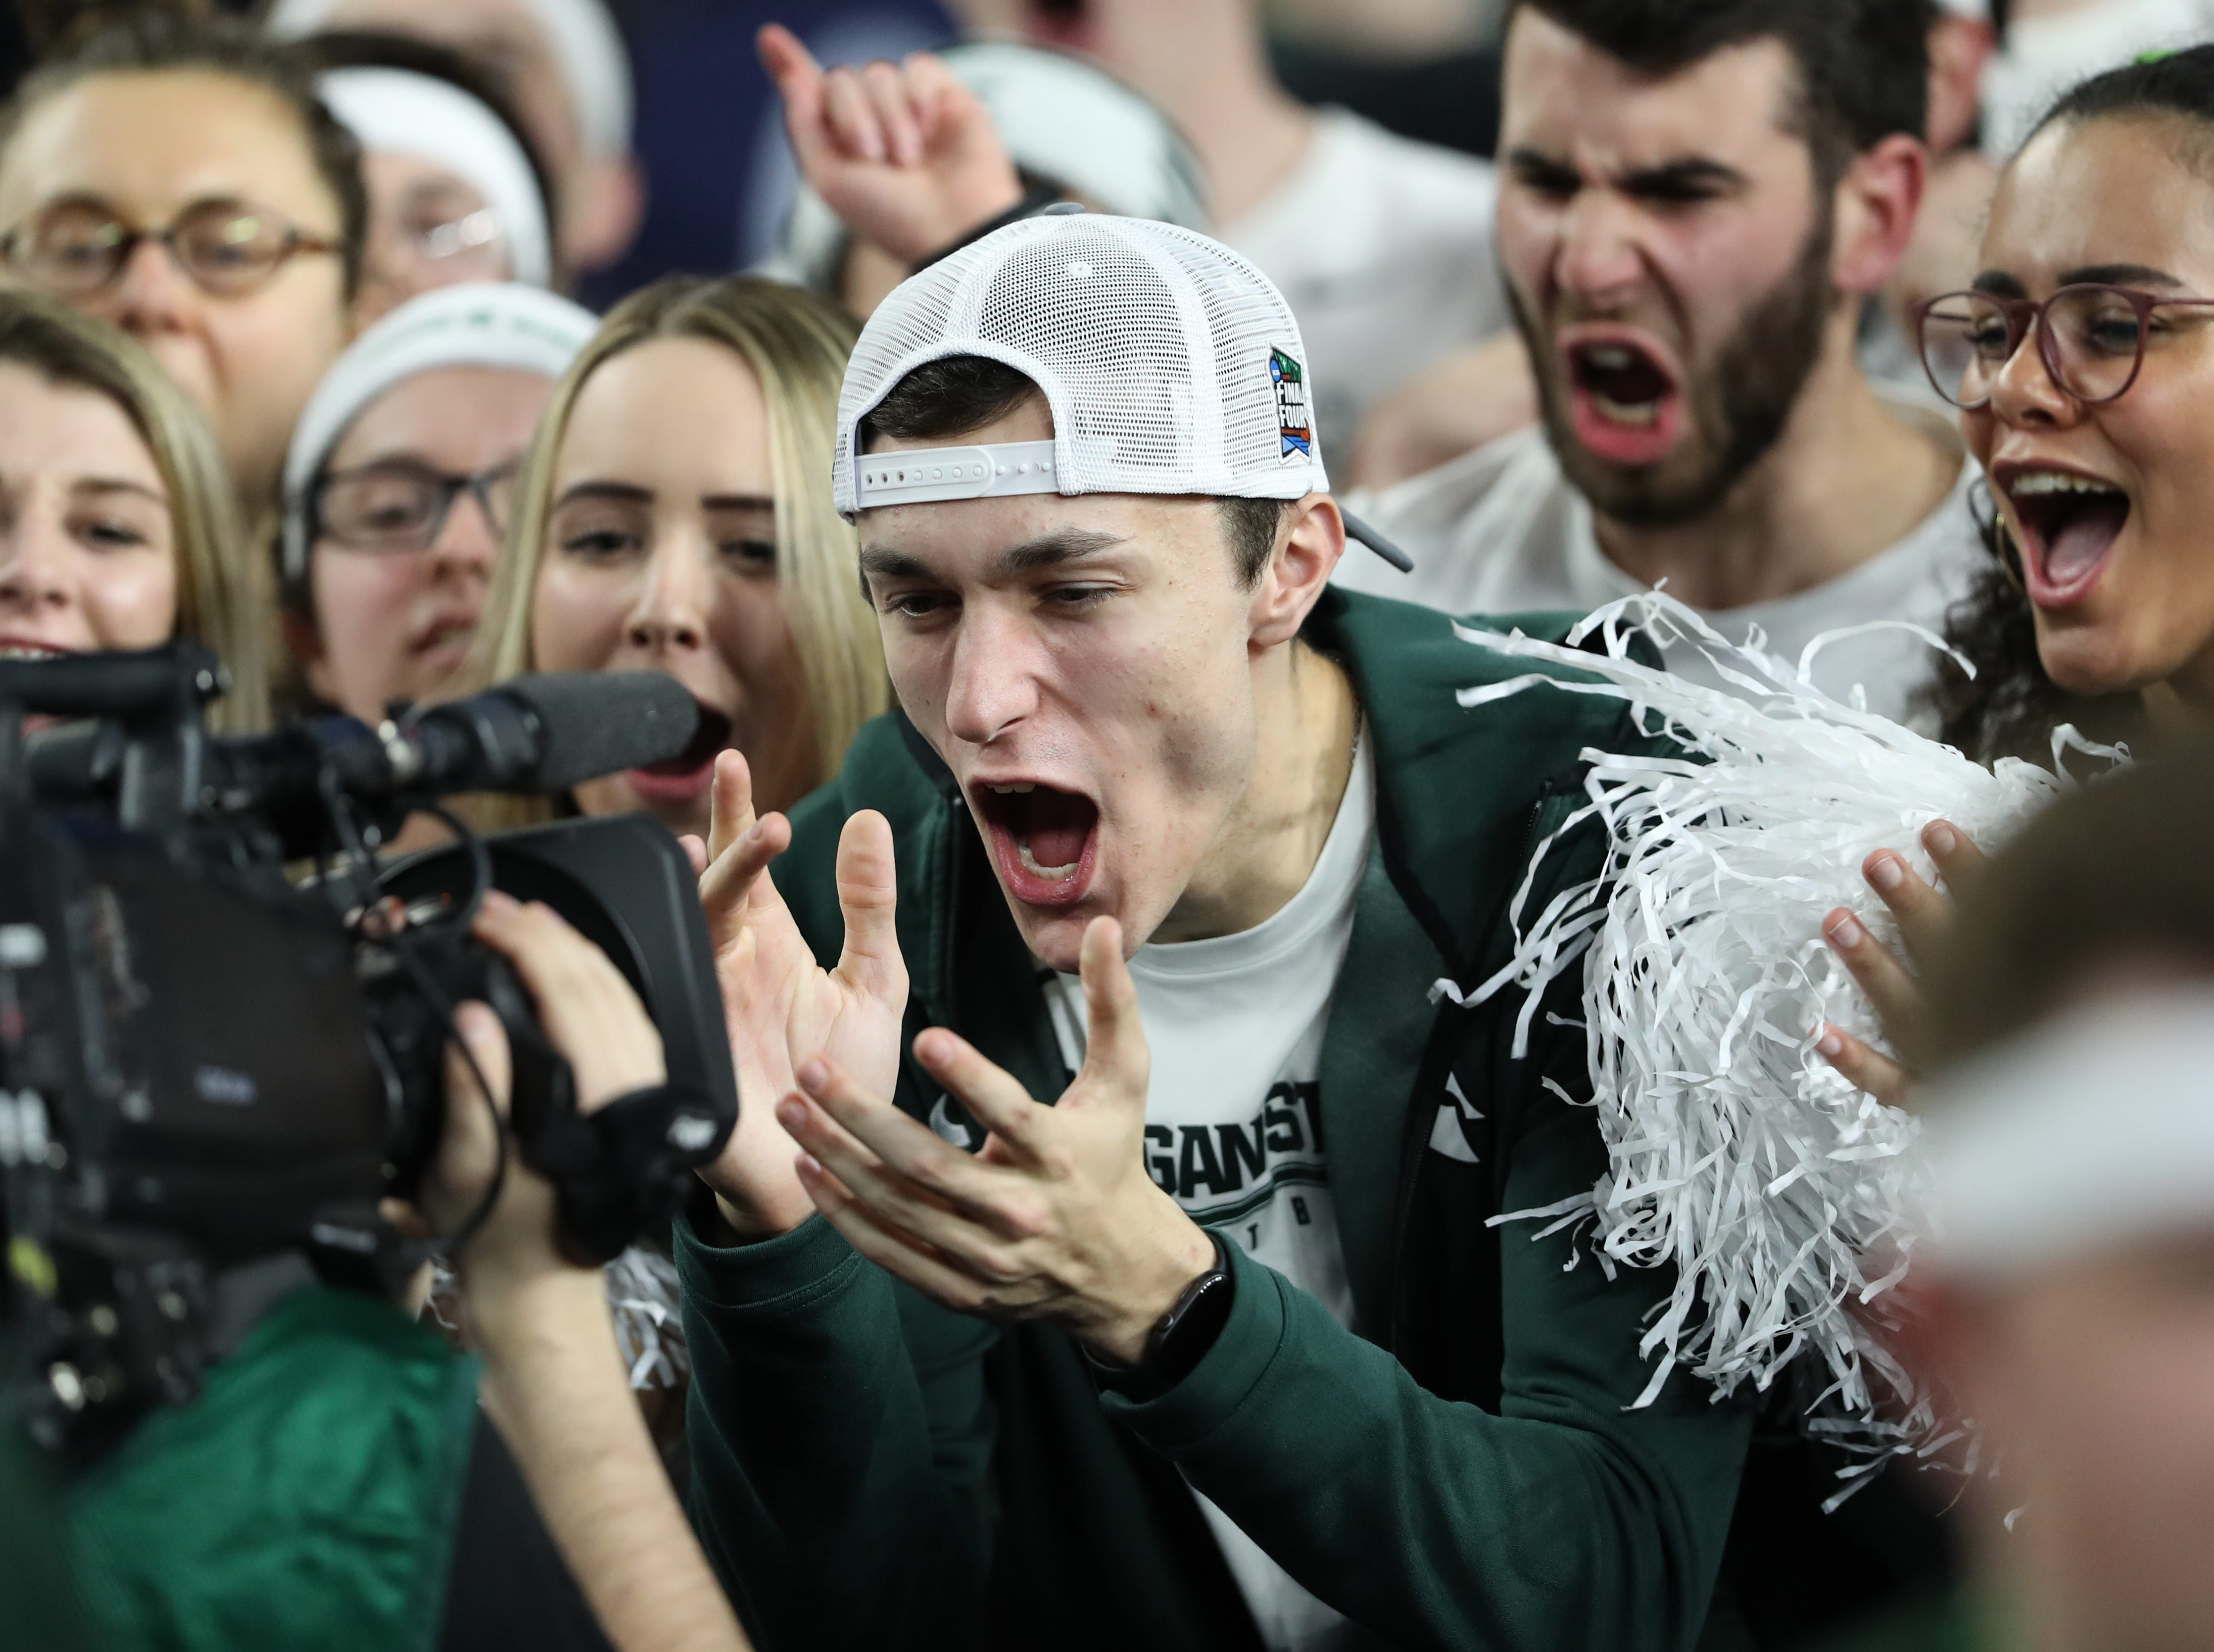 A Michigan State cheers for the camera before the start of their Final Four game against Texas Tech at U.S. Bank Stadium in Minneapolis, Minnesota on Saturday, April 06, 2019.